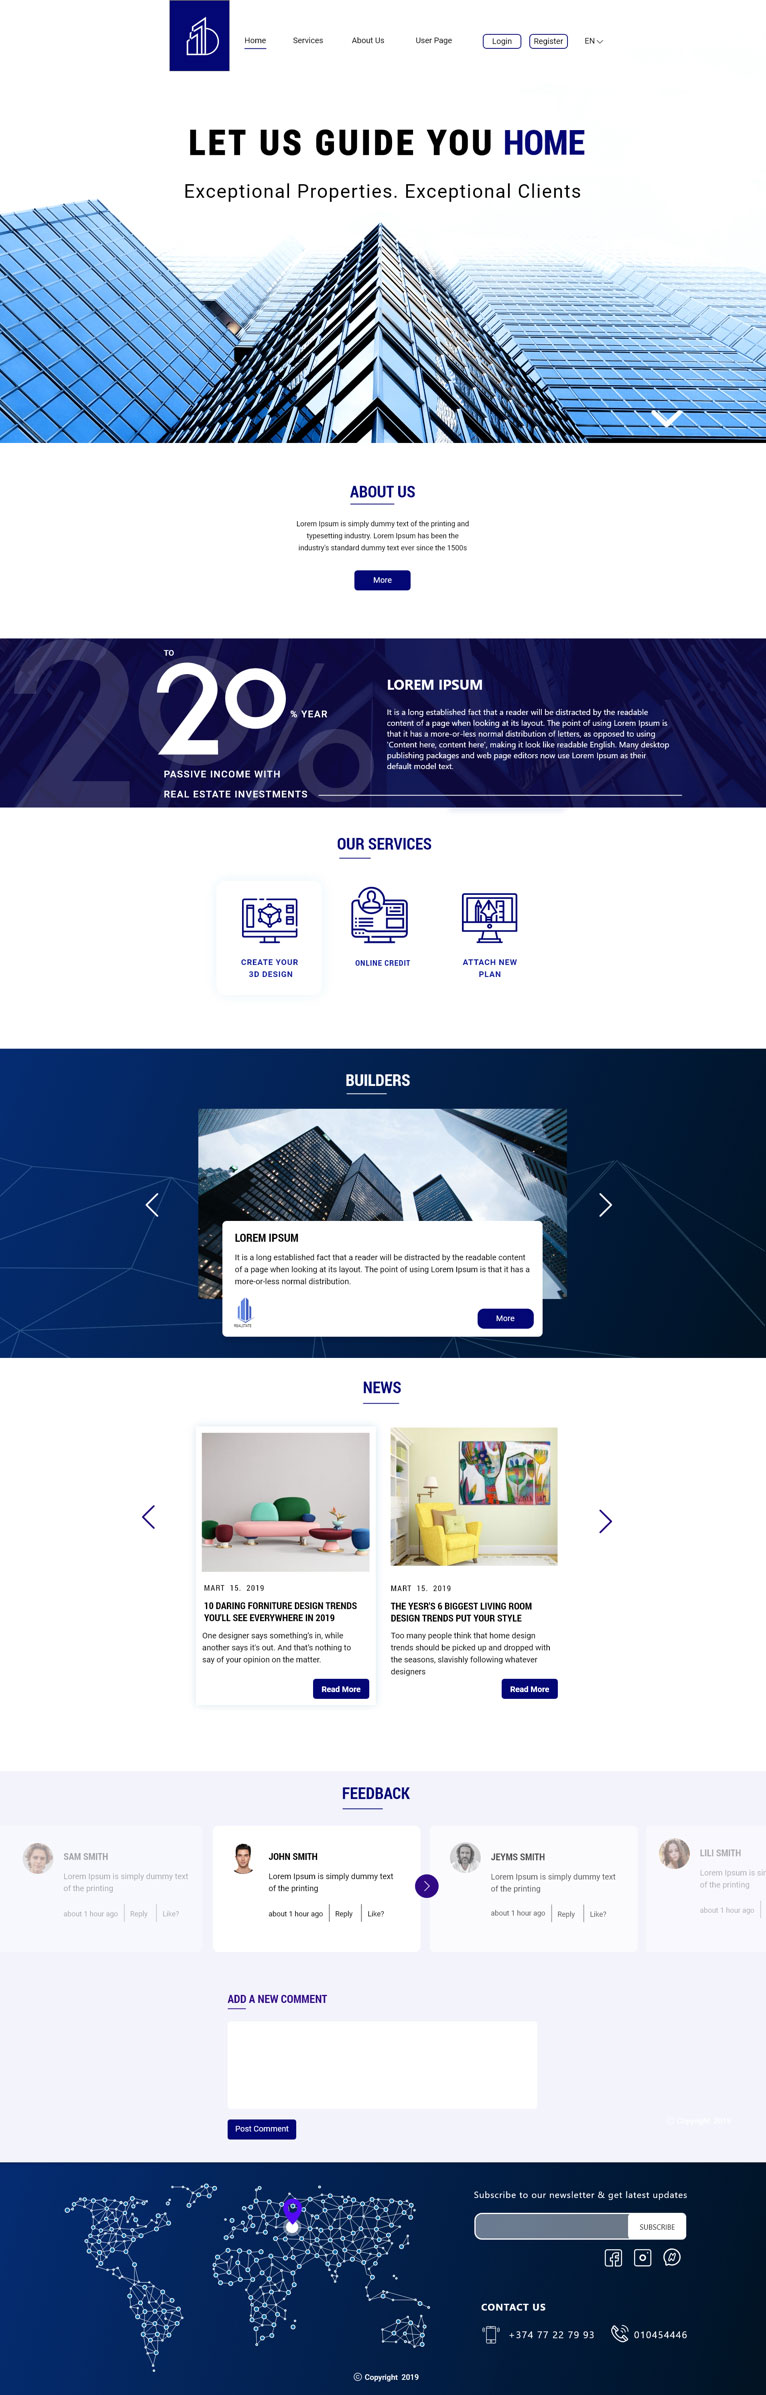 Web Design | Be Home